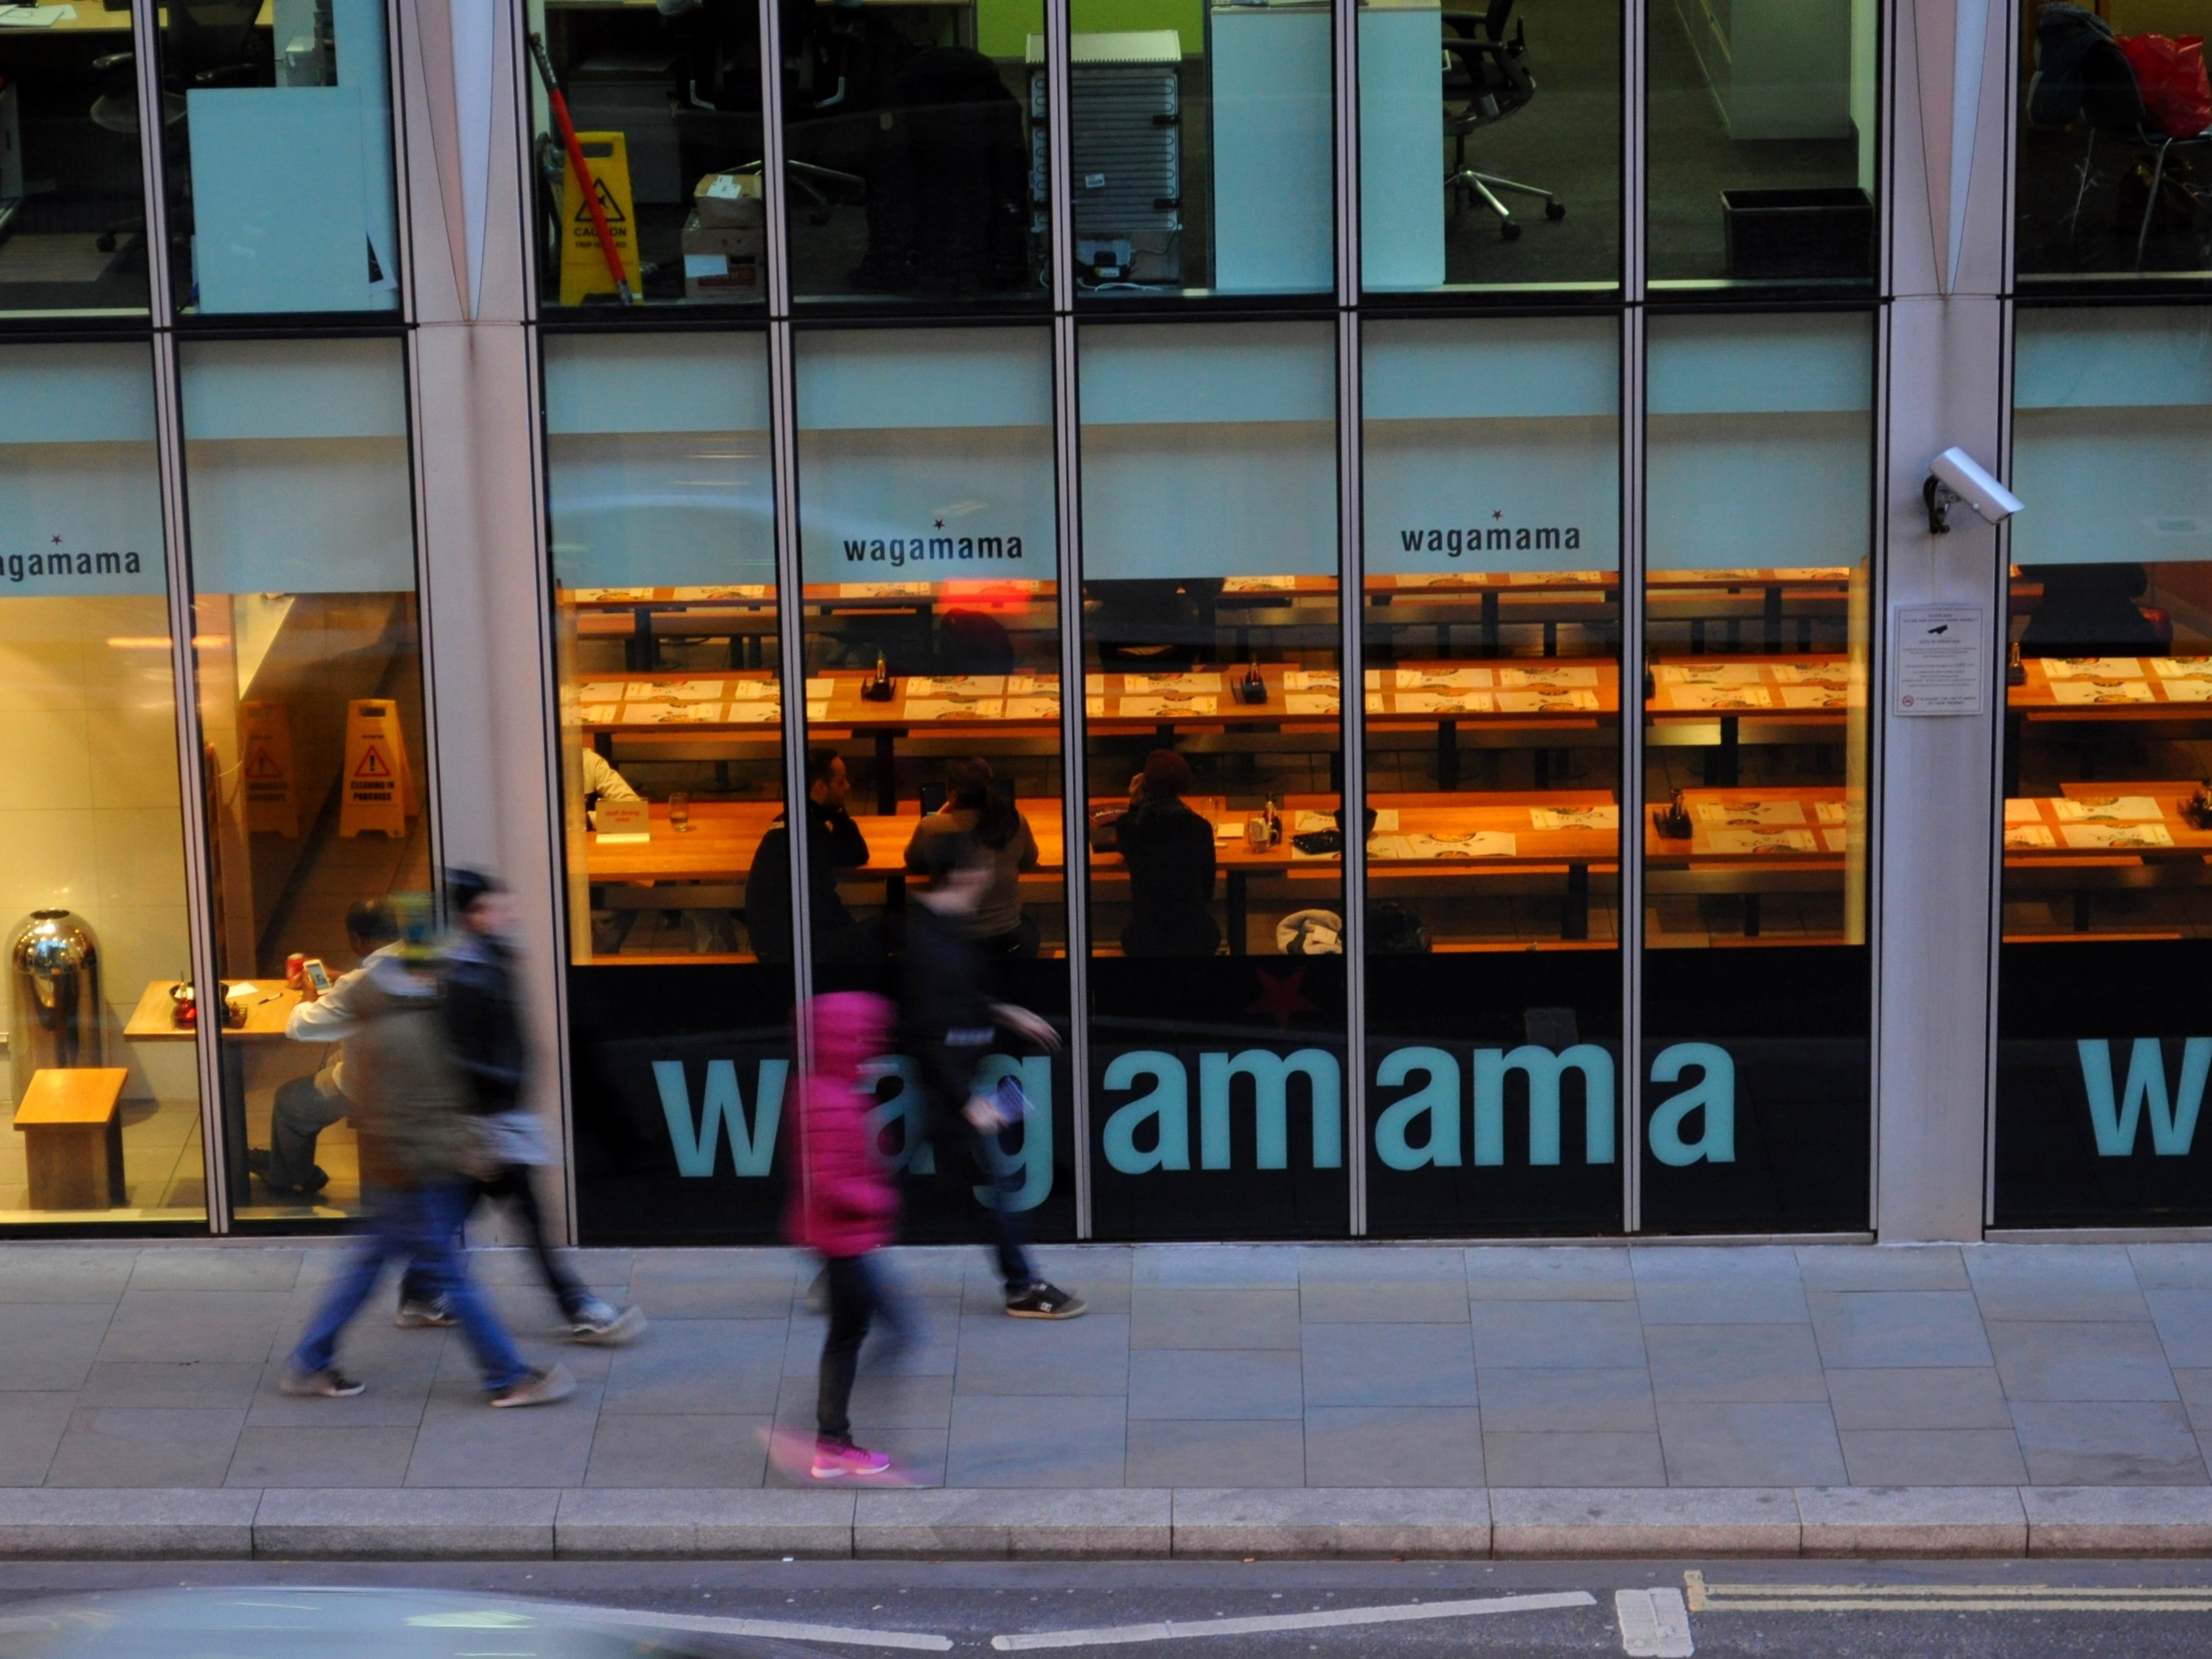 Wagamama's buyout by The Restaurant Group could be under threat